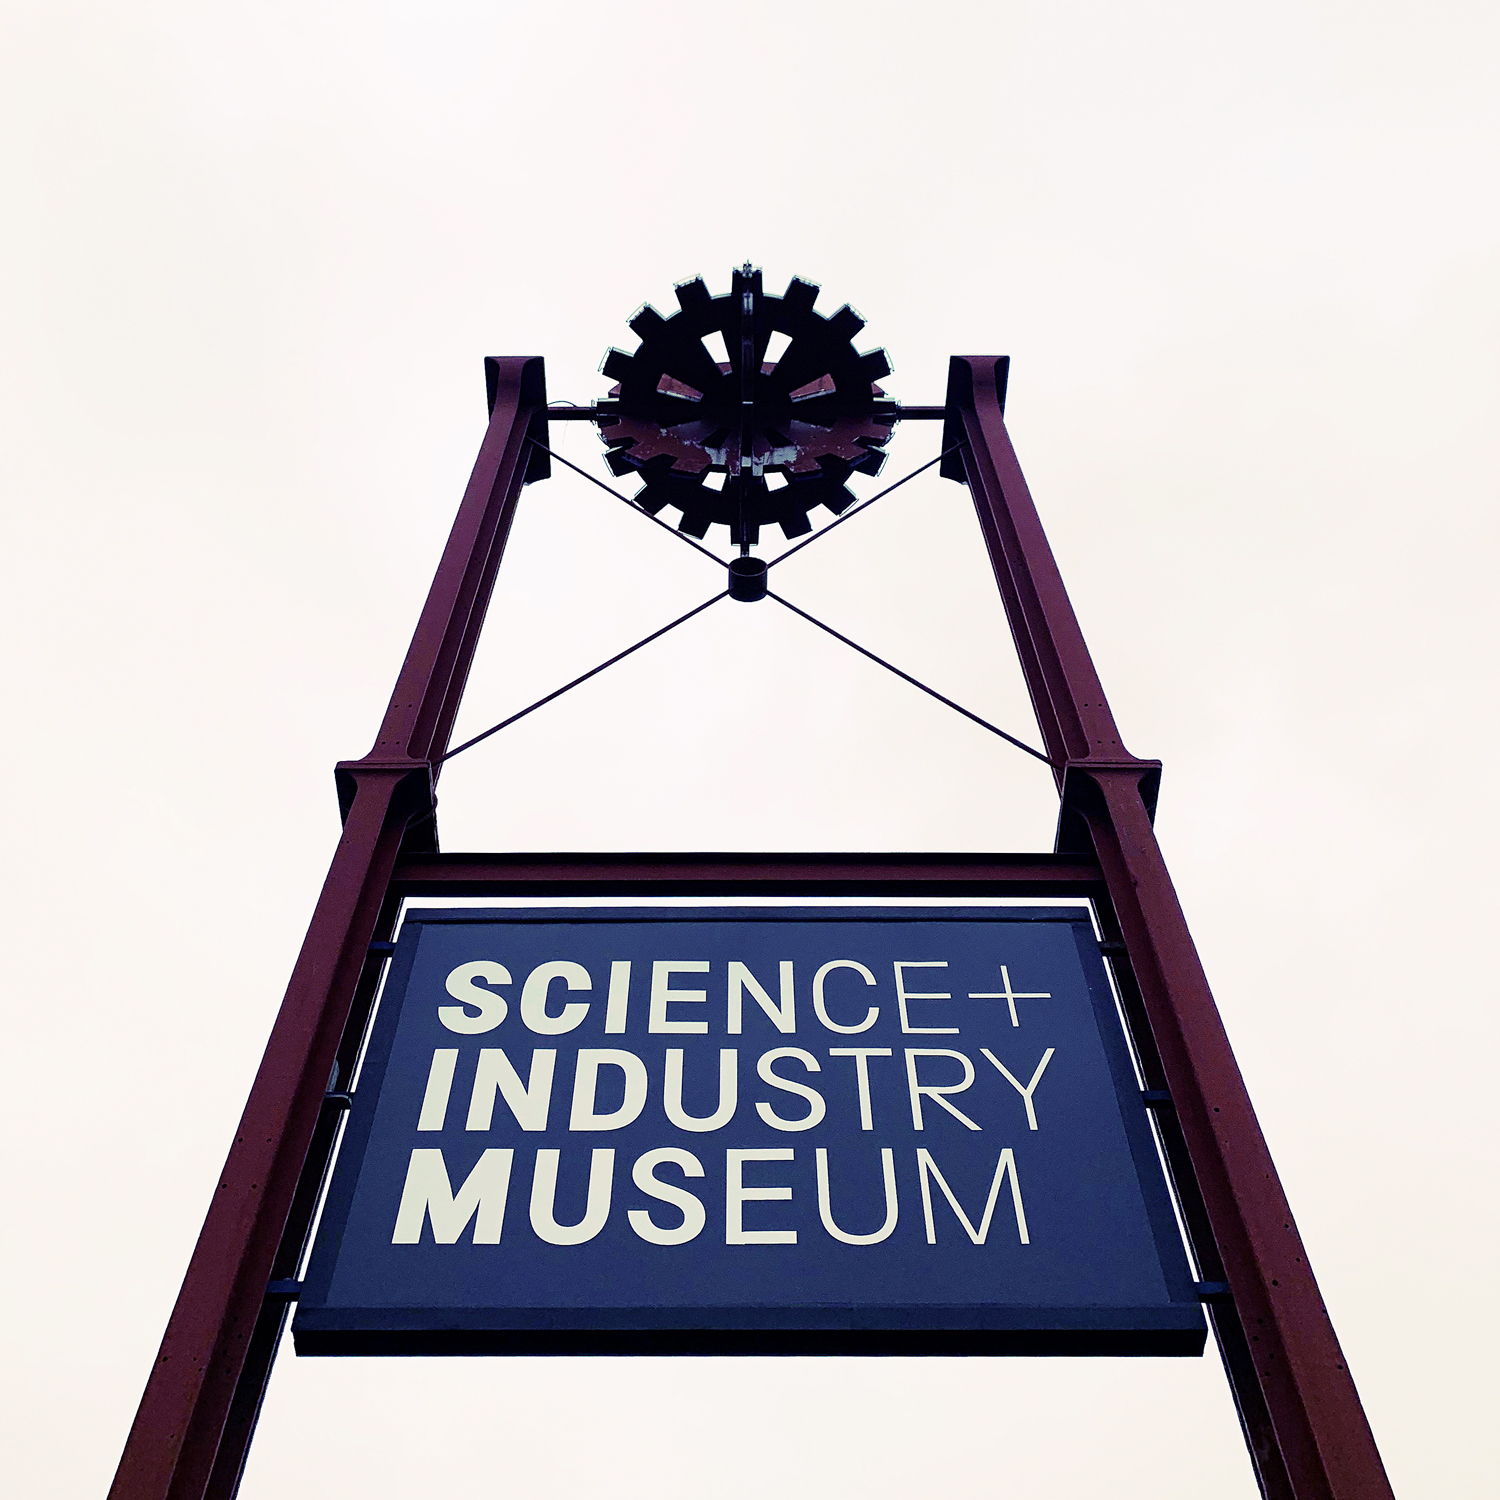 Mascot_Science-and-Industry-Museum_01.jpg